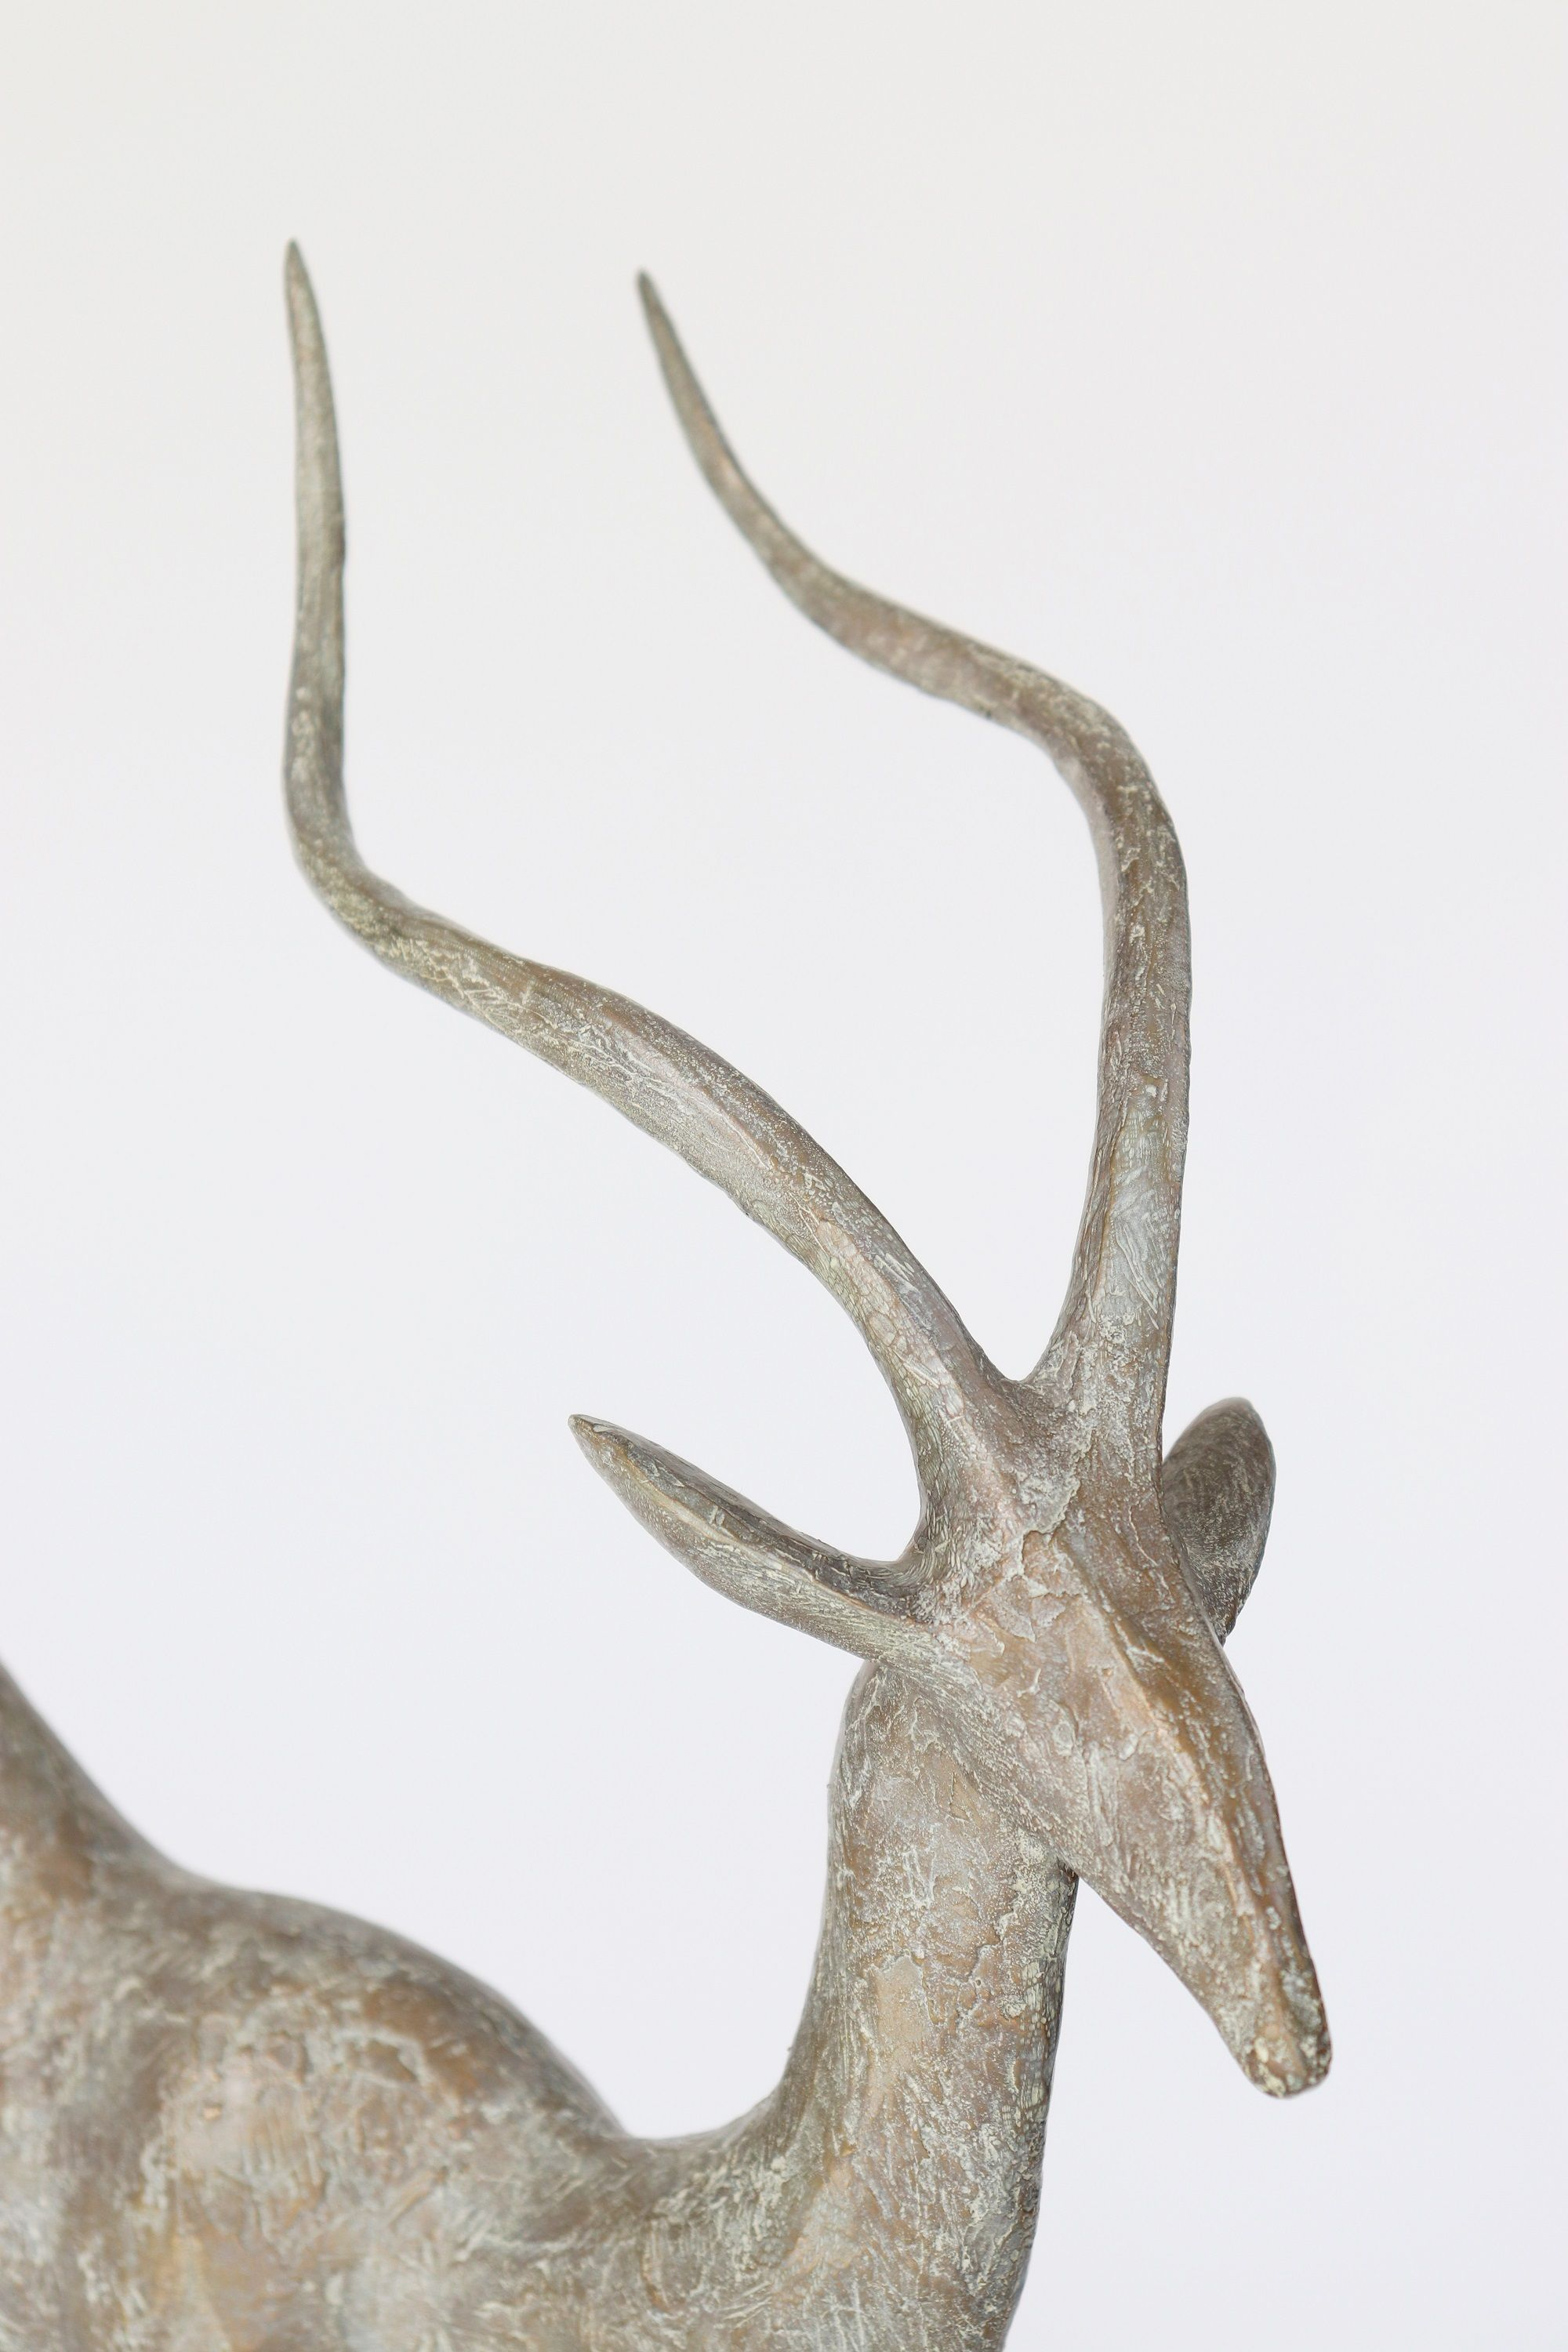 Gazelle III,Pierre Yermia,Sculpture, detail 3